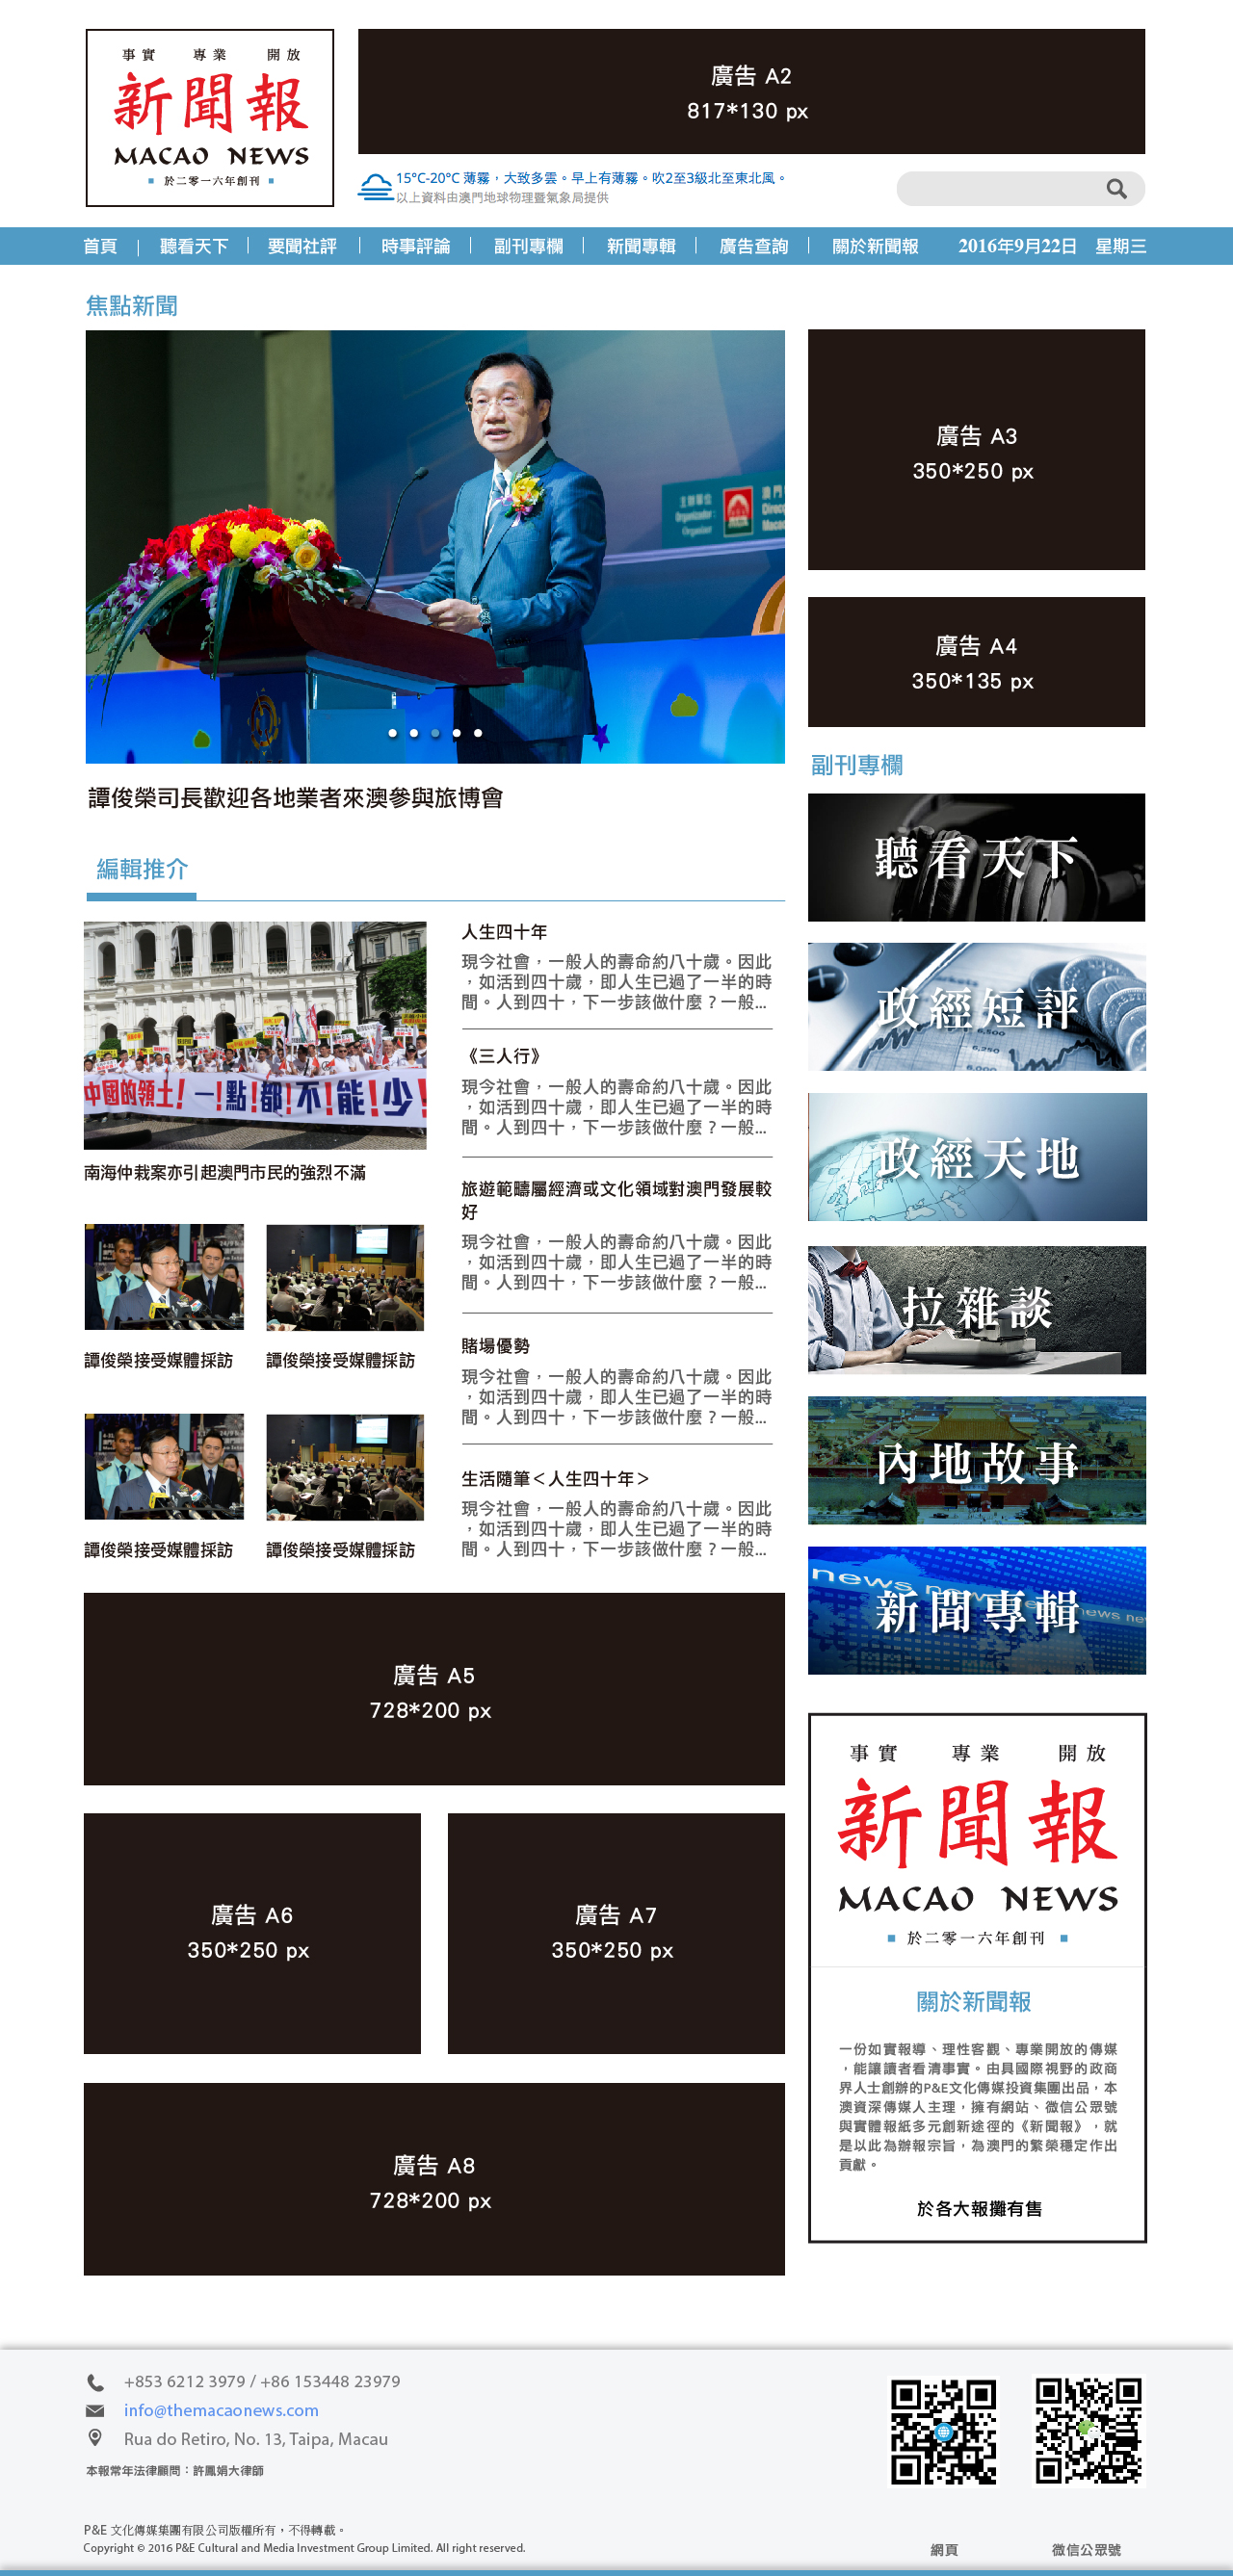 macao-news-website-ad-01